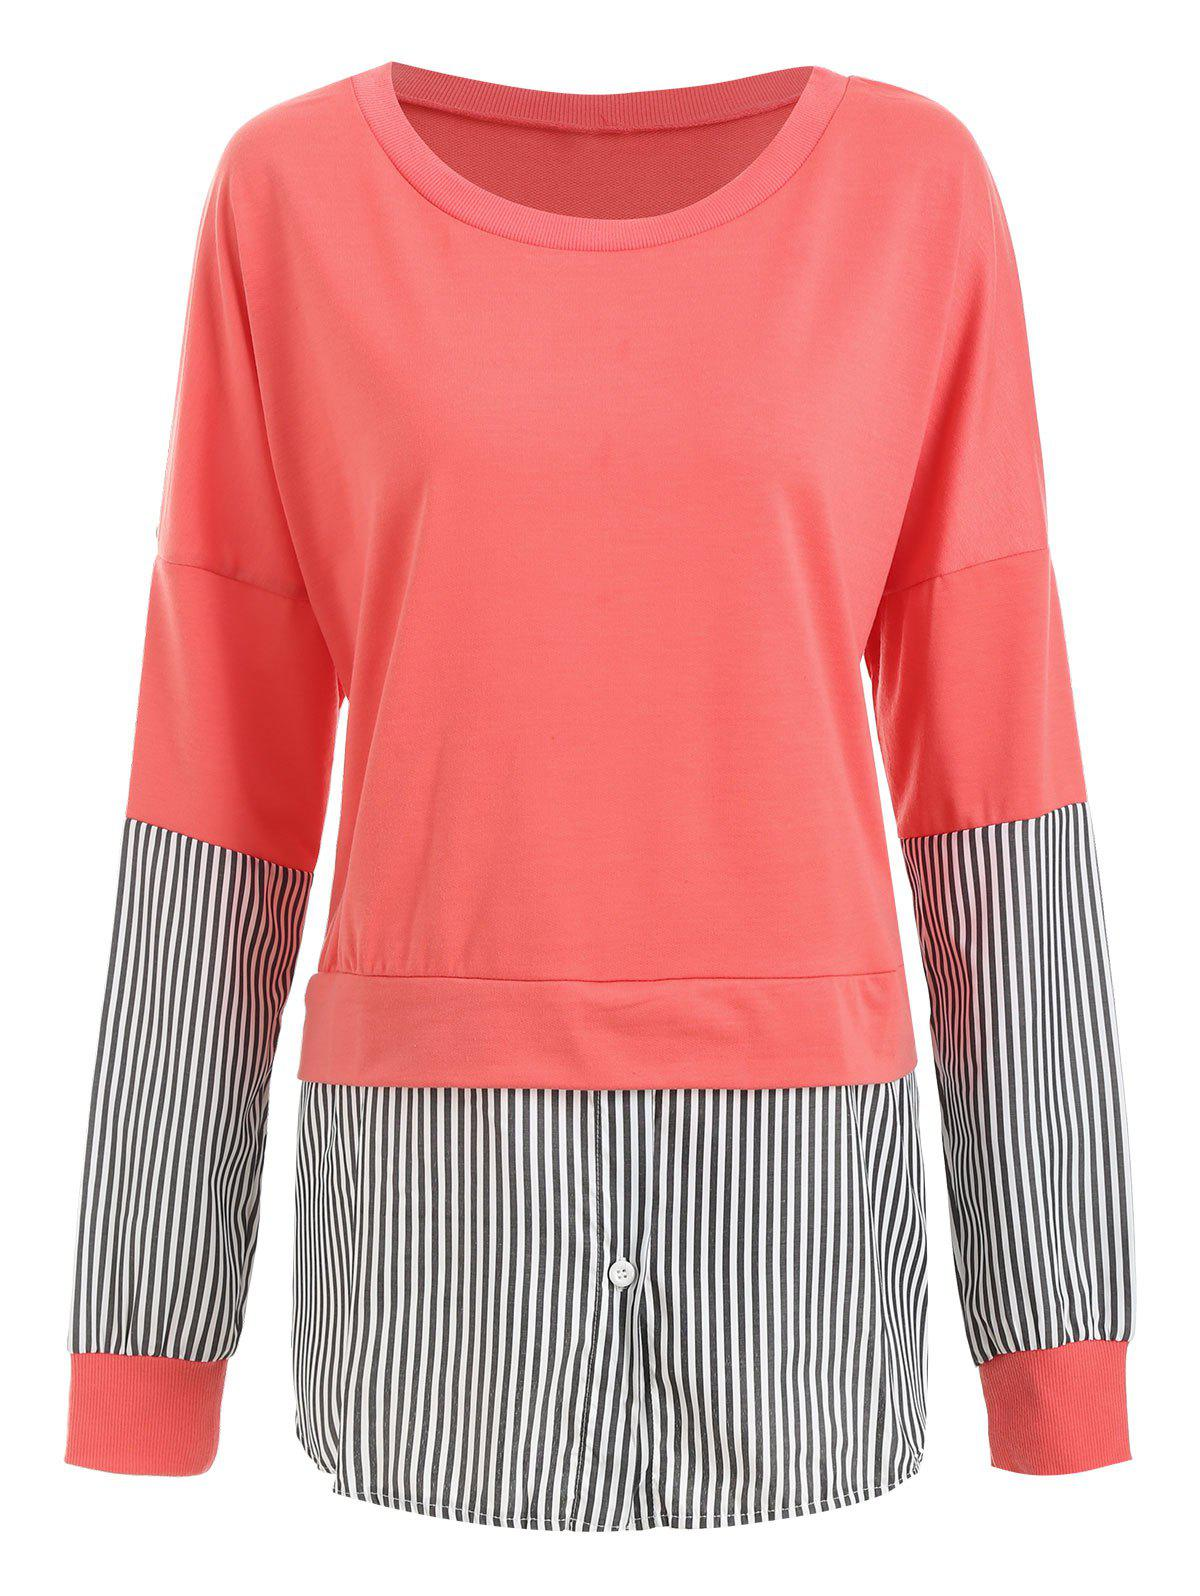 Striped Patched Crew Neck Longline Sweatshirt - LIVING CORAL XL